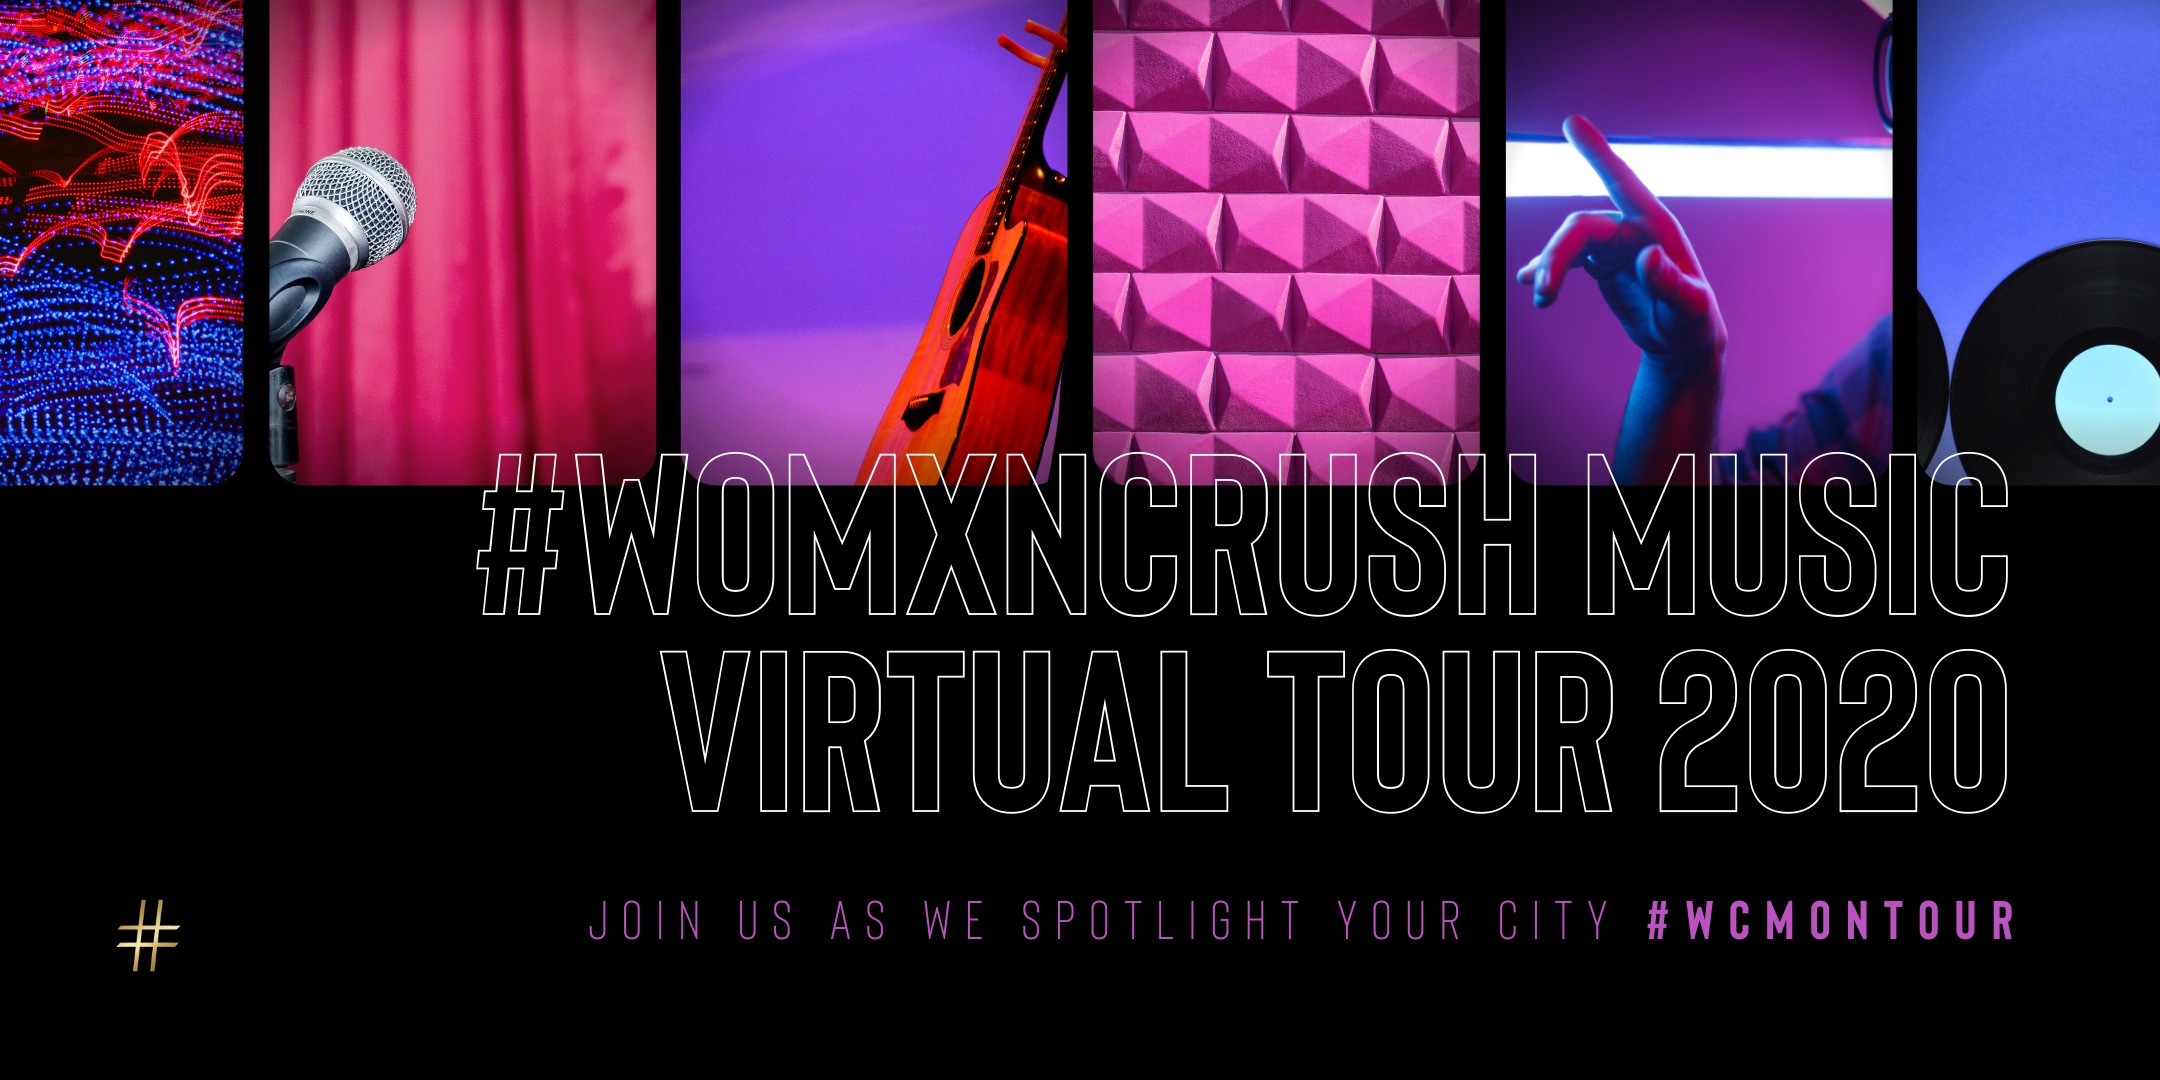 #WomxnCrush Music Announces Nationwide Virtual Tour To Connect Local Communities